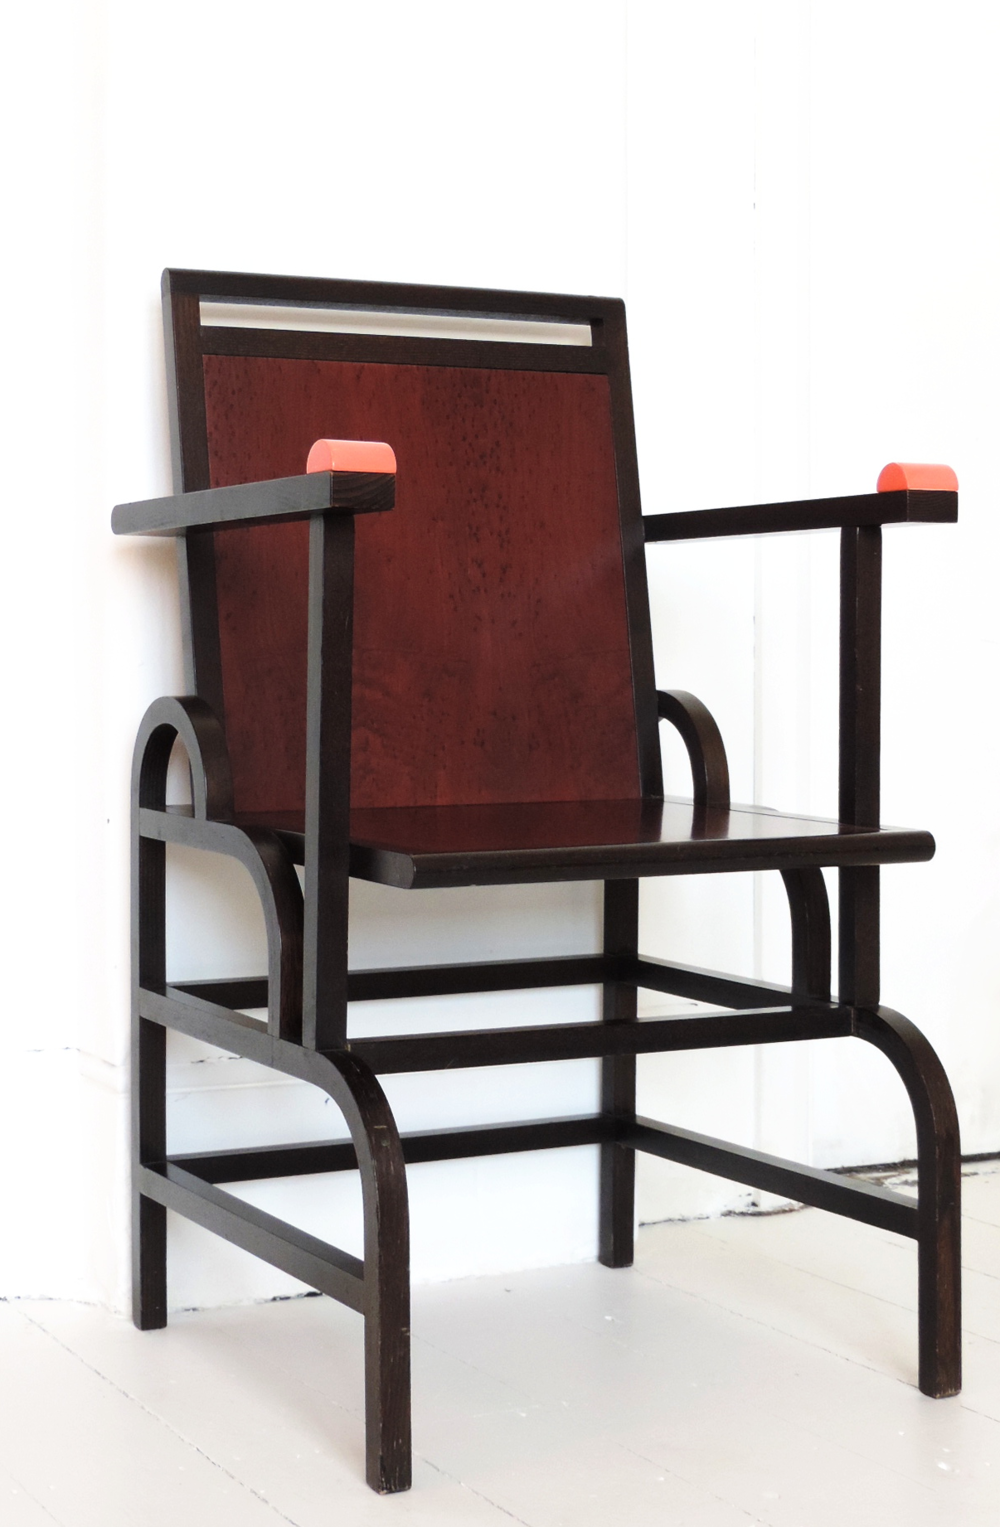 This original Gloucester Chair is available for sale in our shop. It was loaned to the Design Museum for their 2001 'Memphis Remembered' exhibition which was opened by Etorre Sottsass.